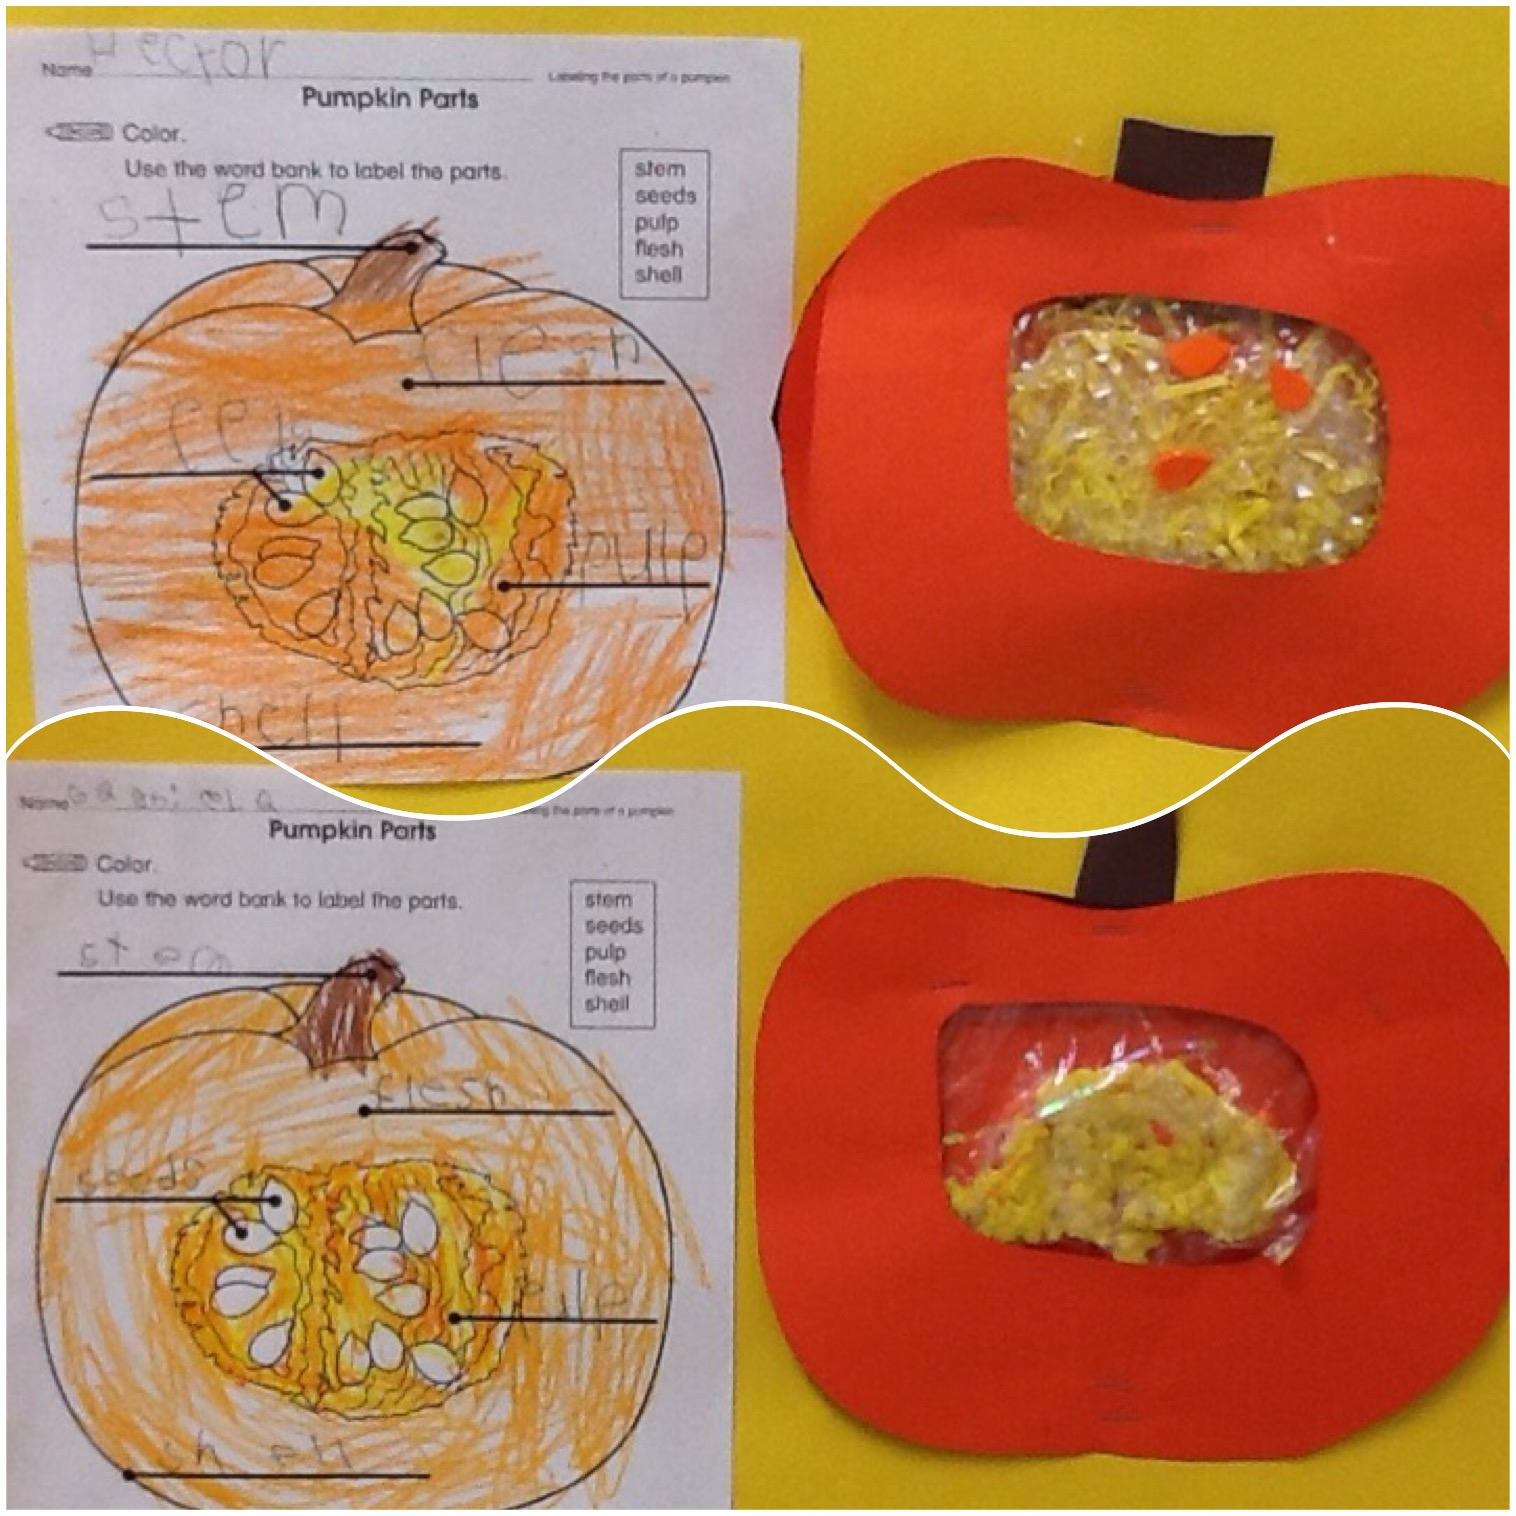 hedgehog blog pumpkin diagramsthe inside of a pumpkin as well as an example of what the inside of a real pumpkin would look like (they used hair gel to give it that \